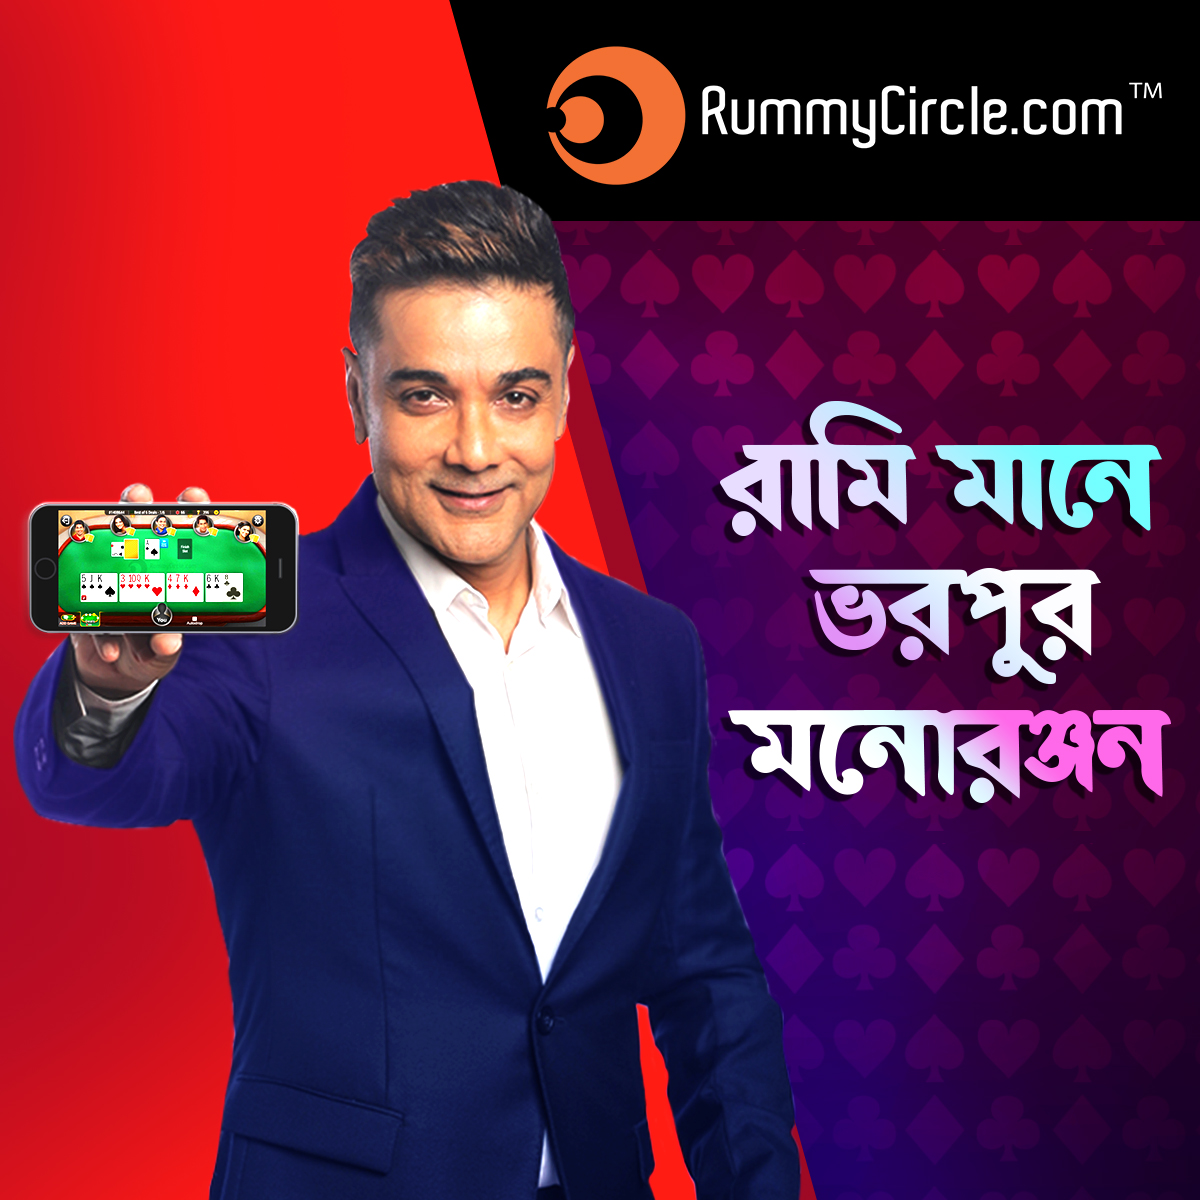 With a big celebrity like Prosenjit talking about rummy and seen playing rummy, players feel more confident to try the game out